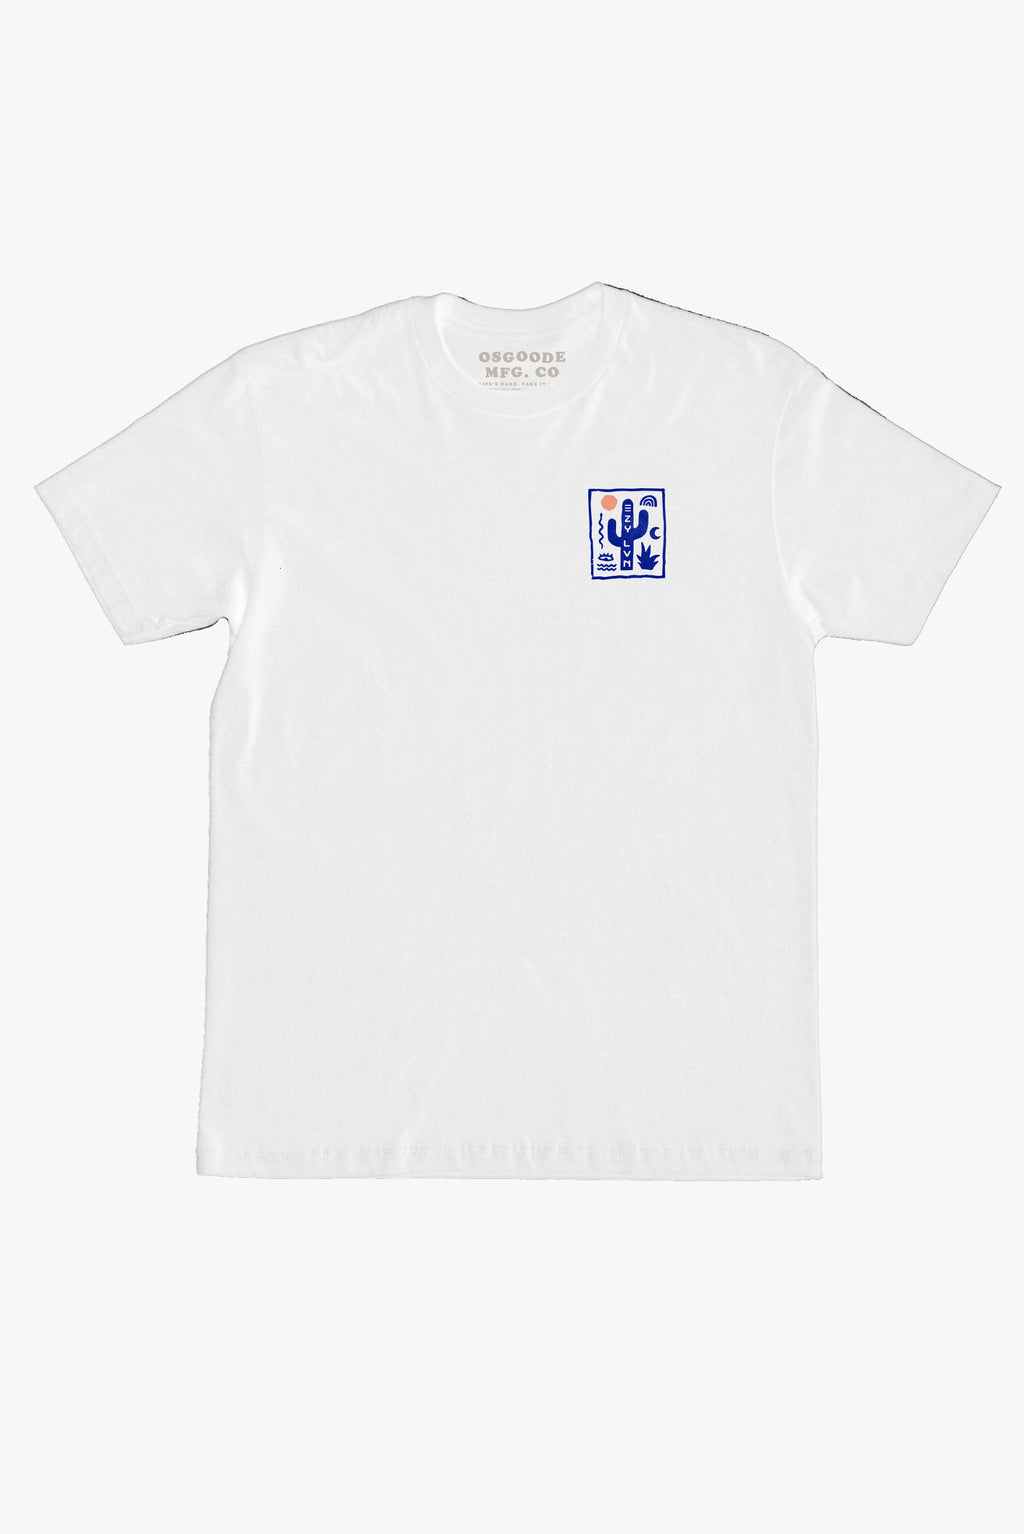 JOSHUA T-SHIRT WHITE